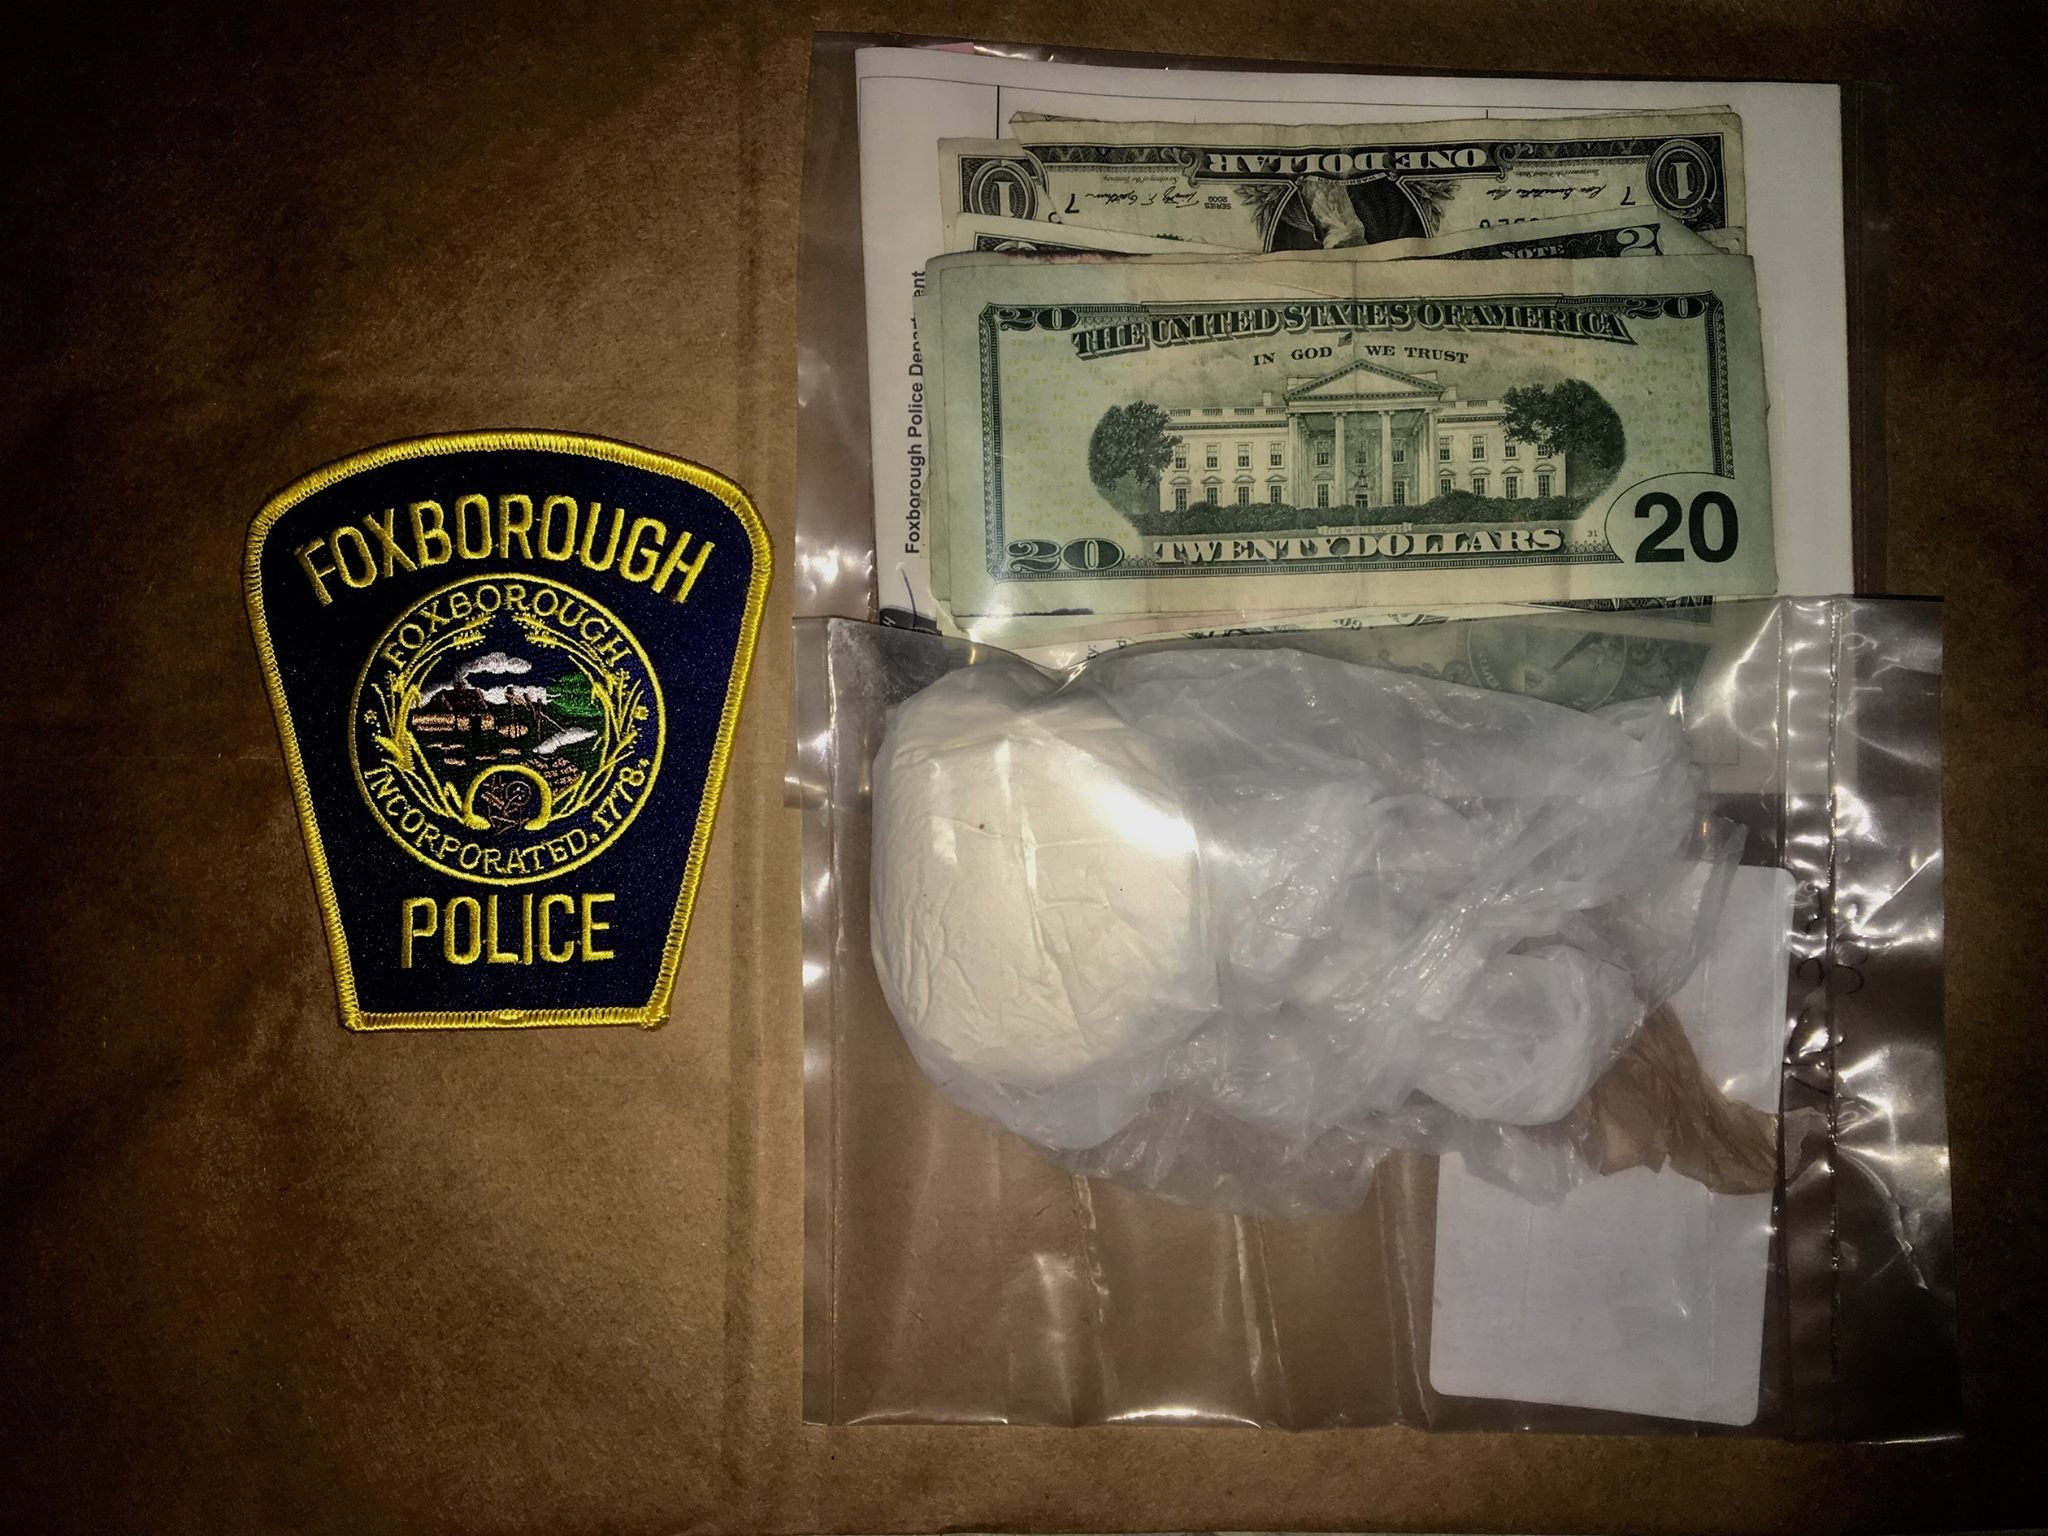 Courtesy of the Foxborough Police Department.